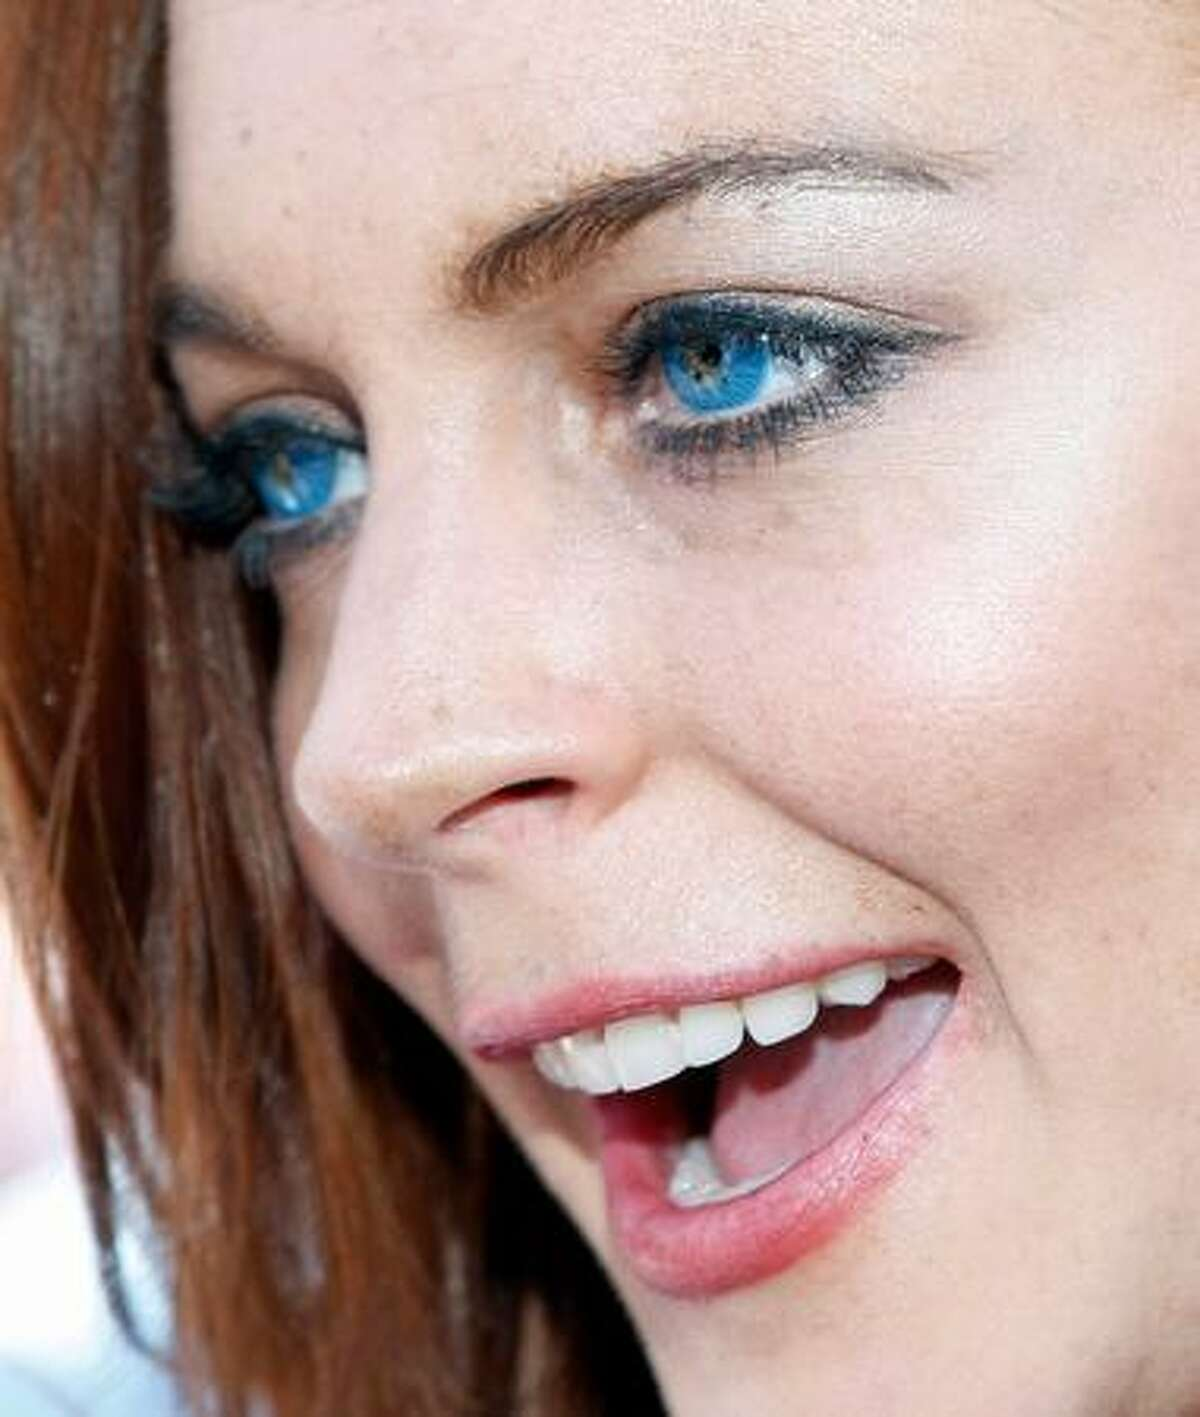 Actress Lindsay Lohan is interviewed as she arrives at the Wet Republic pool at the MGM Grand Hotel/Casino to celebrate her birthday and her Sevin Nyne brand tanning mist in Las Vegas, Nevada. Lohan turns 23 on July 2.